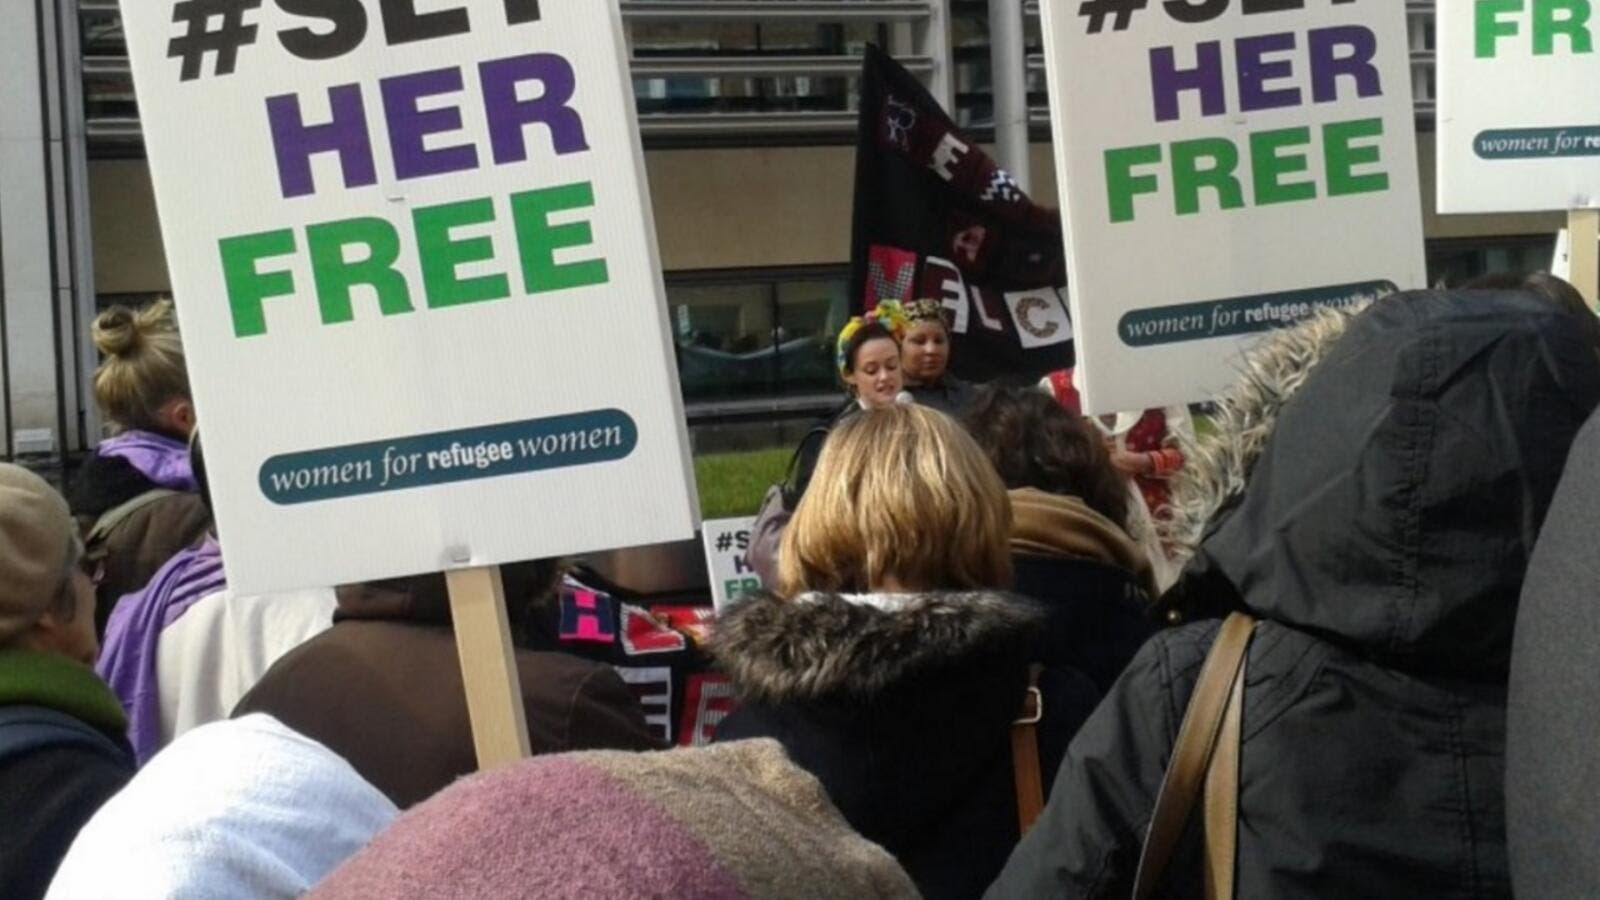 """Home Secretary, you are a woman too"": protesters call on Theresa May to free Yarl's Wood detainees. (AFP/File)"